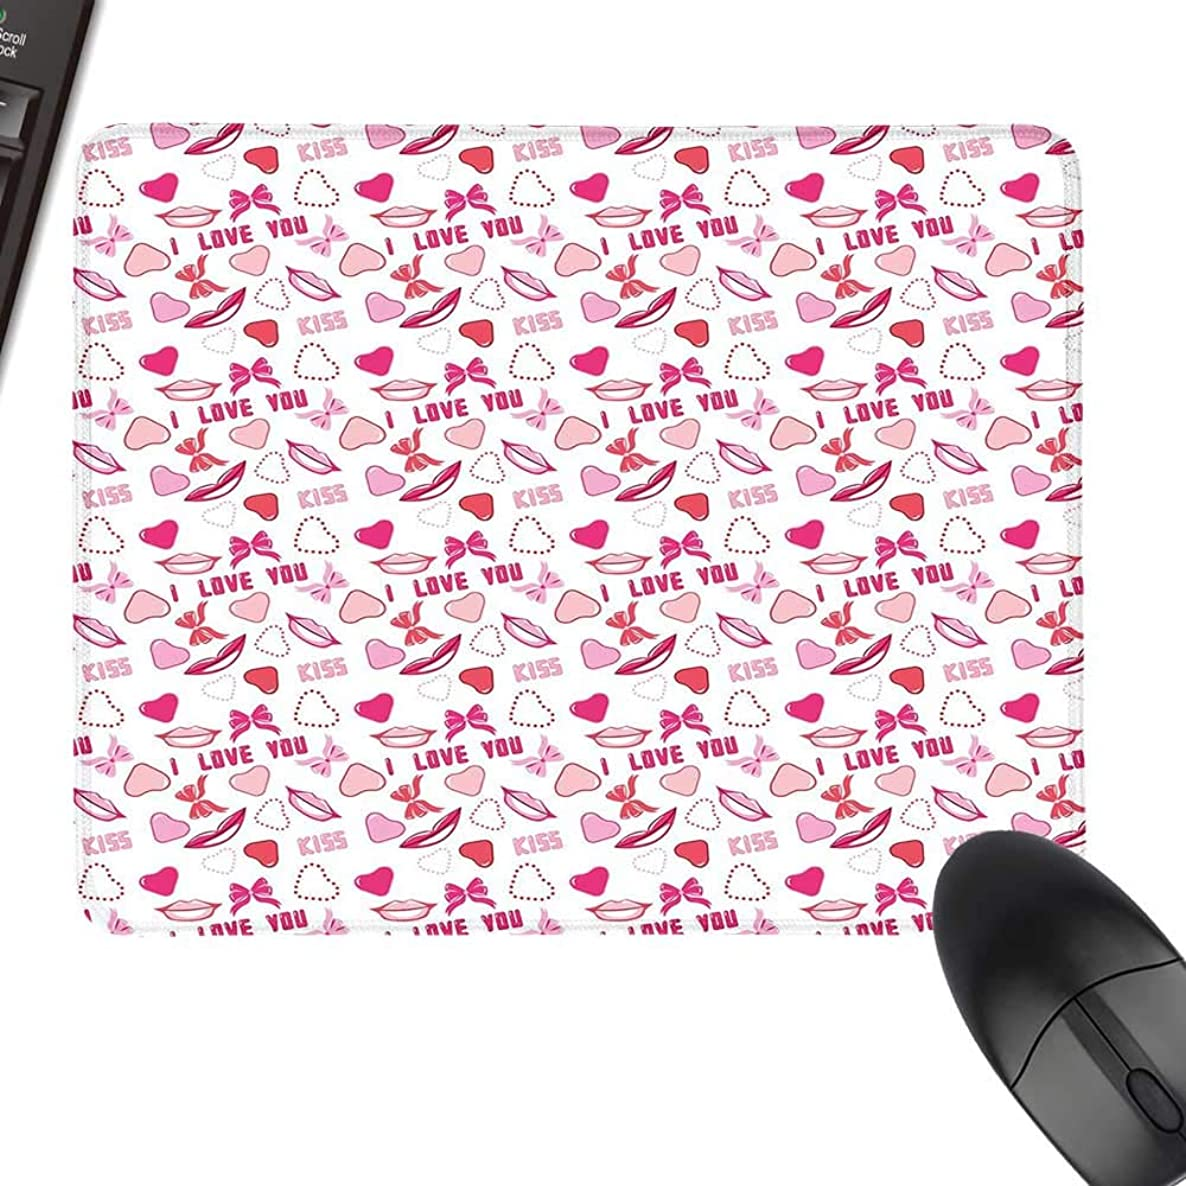 I Love You Hot Selling Extra Large Mouse Pad Romance Related Images in Pink Pattern with Bows Lips Valentines Hearts with Stitched Edges 11.8